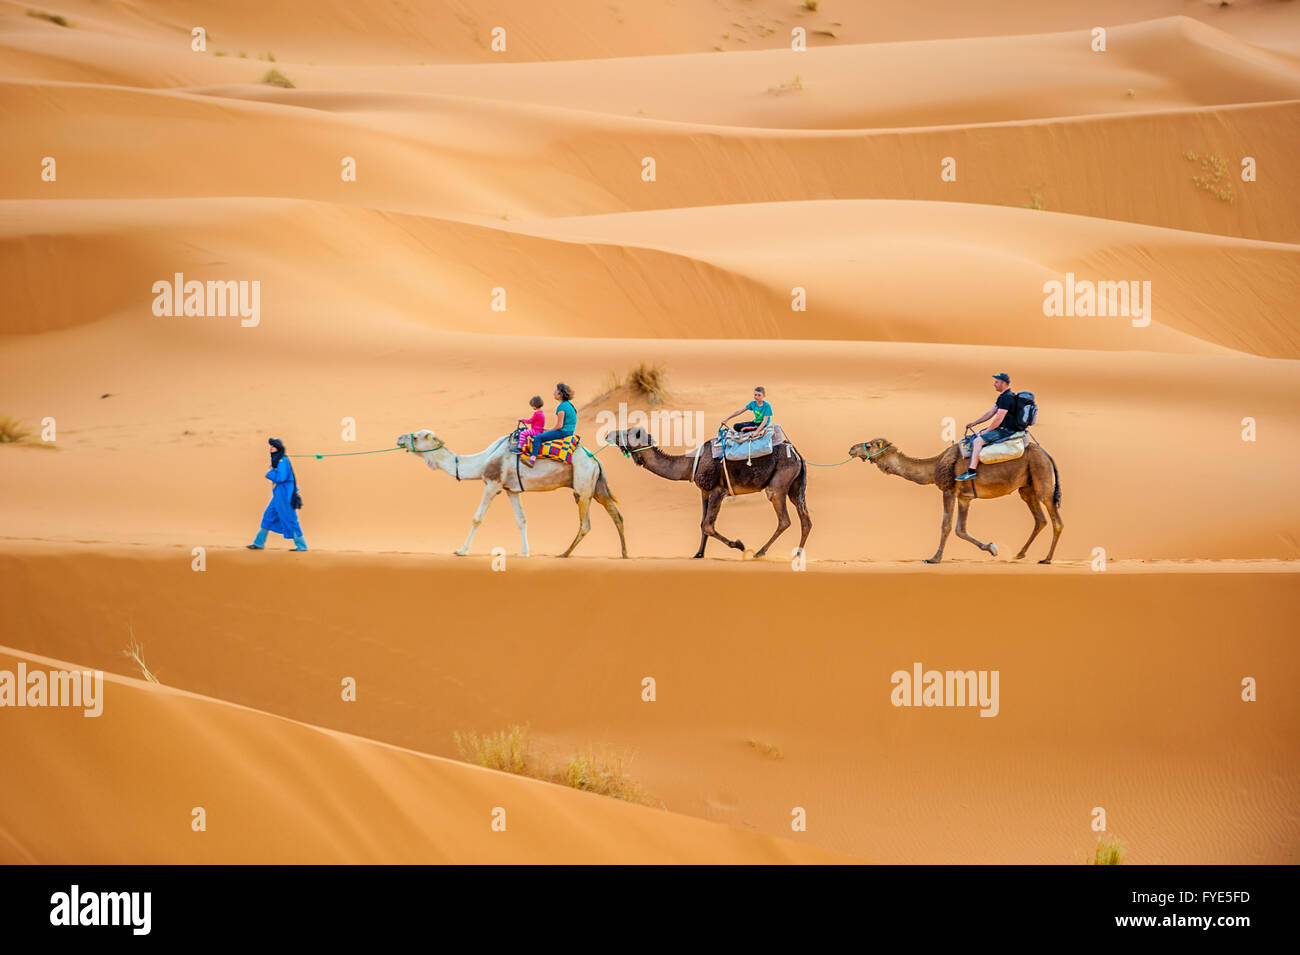 ERG CHEBBY, MOROCCO - April, 12, 2013: Tourists riding camels in Erg Chebbi, Morocco - Stock Image